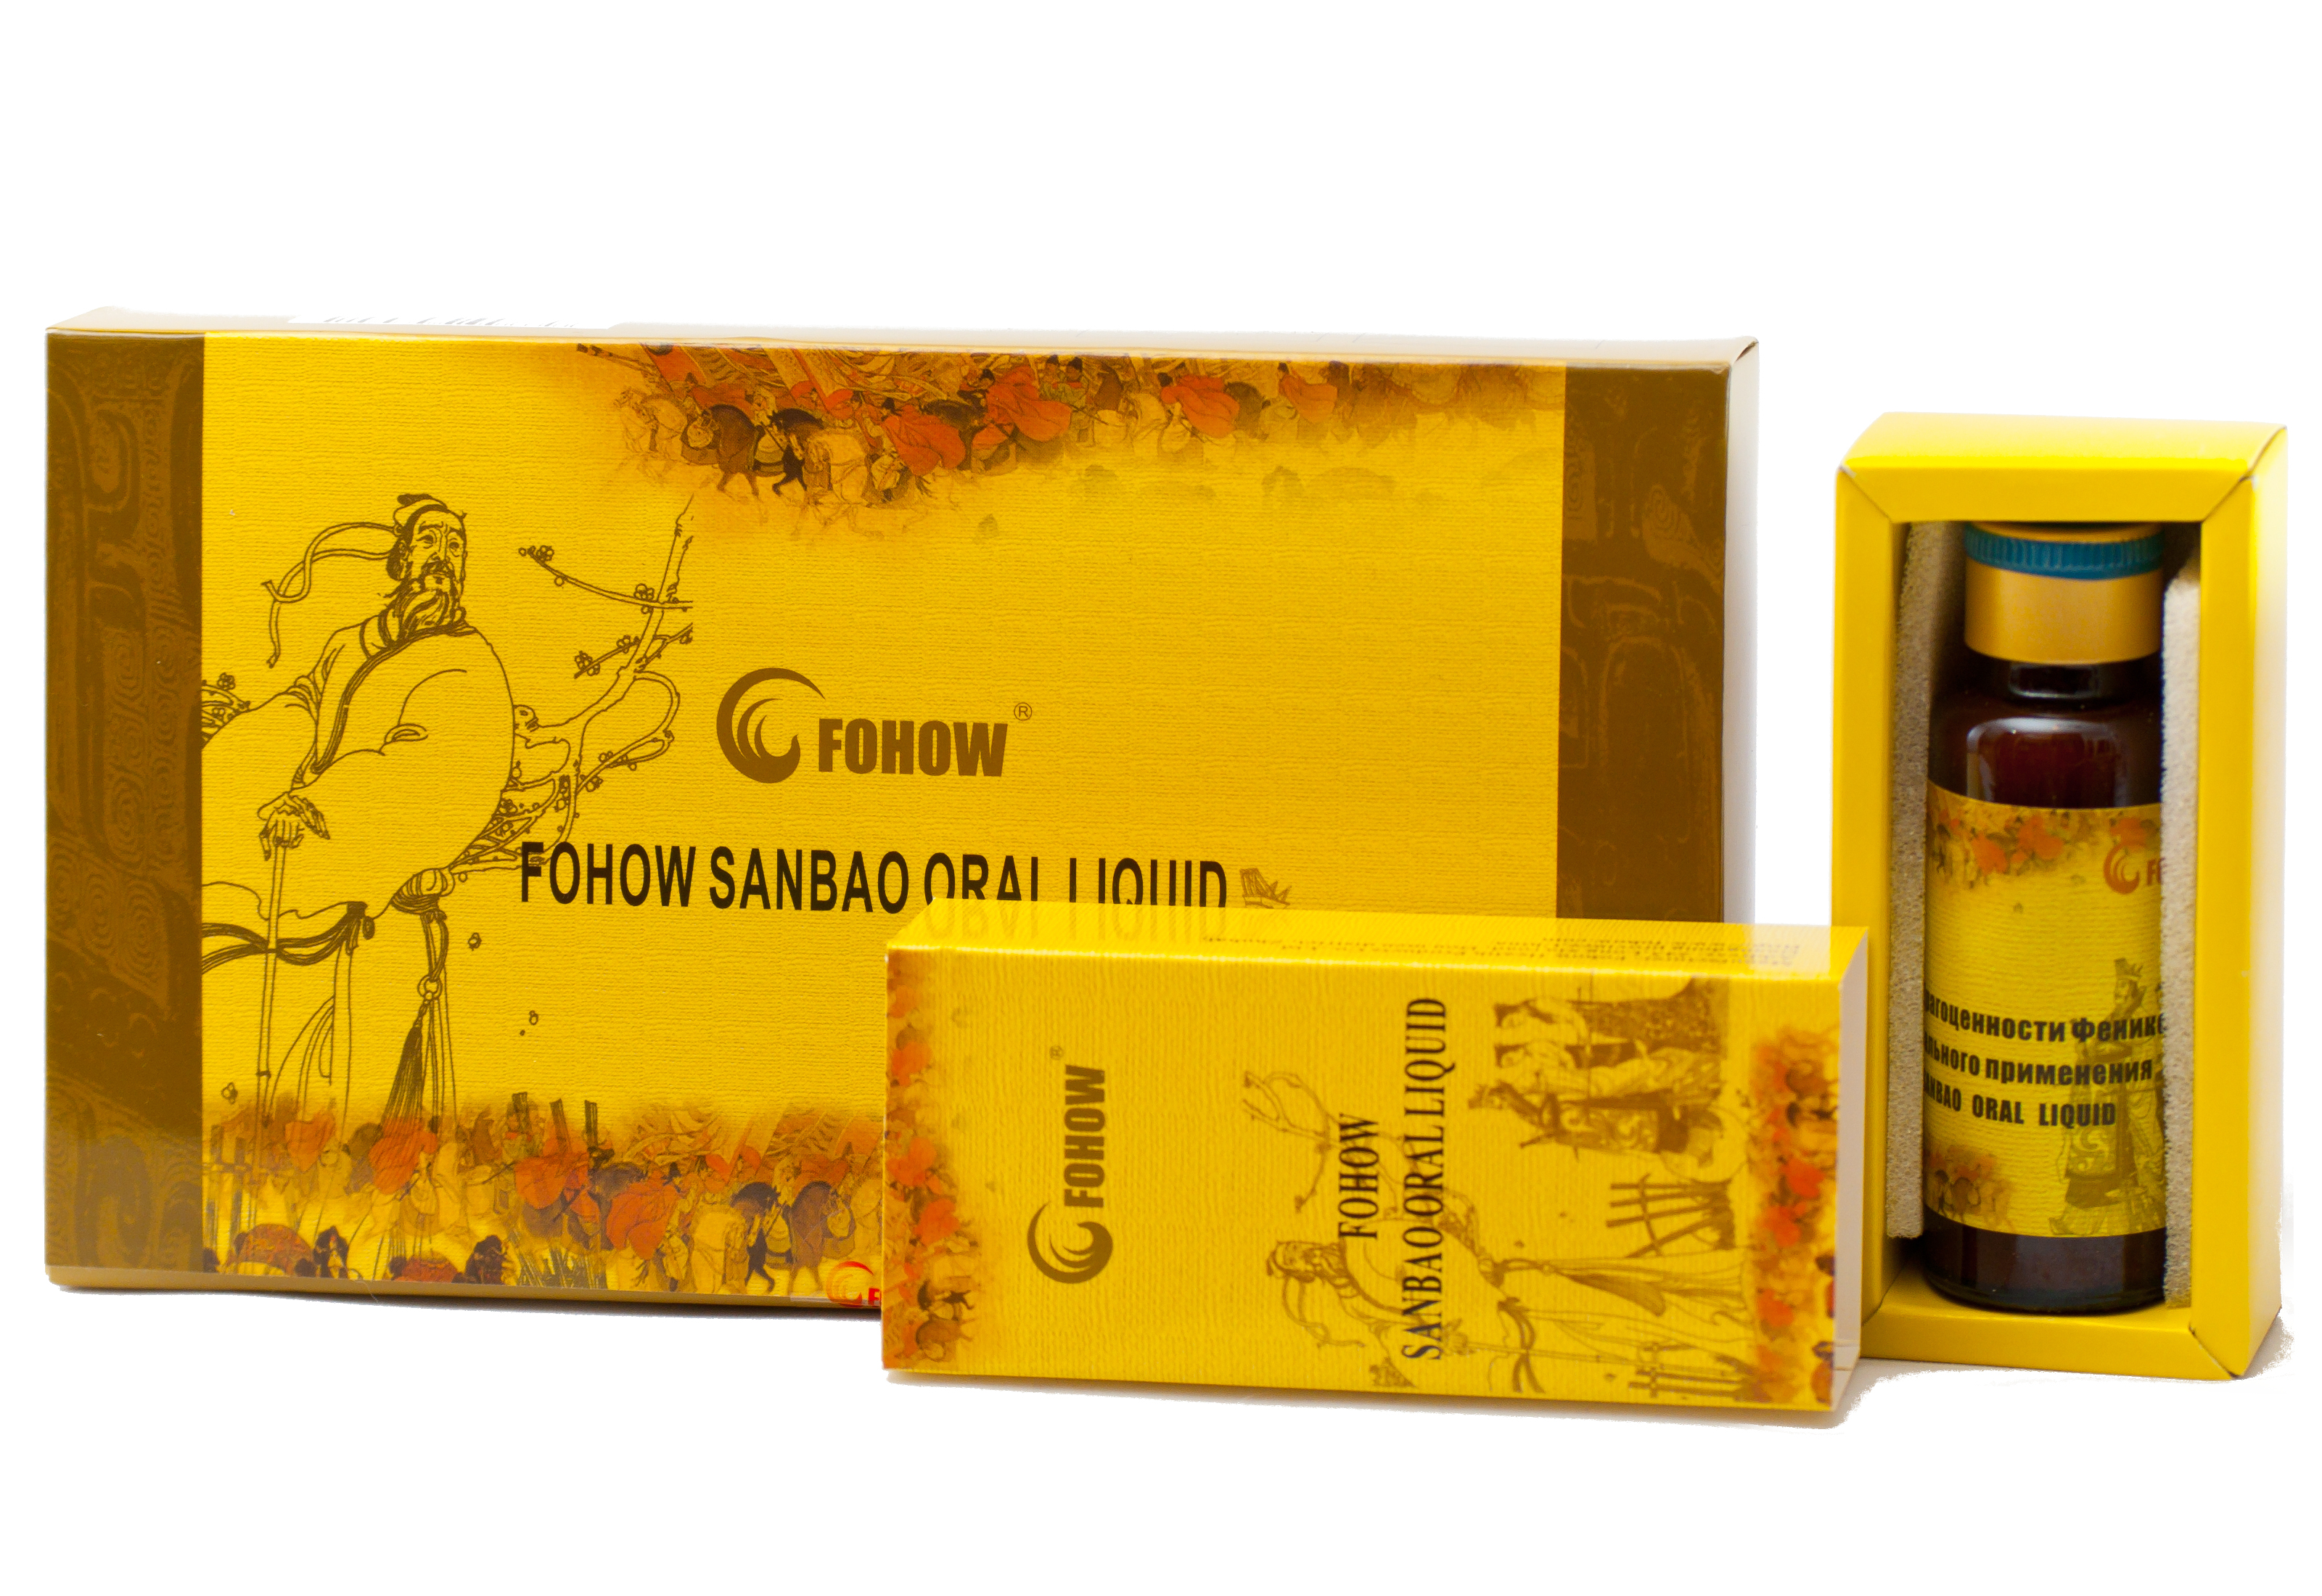 Fohow Sanbao Oral Liquid